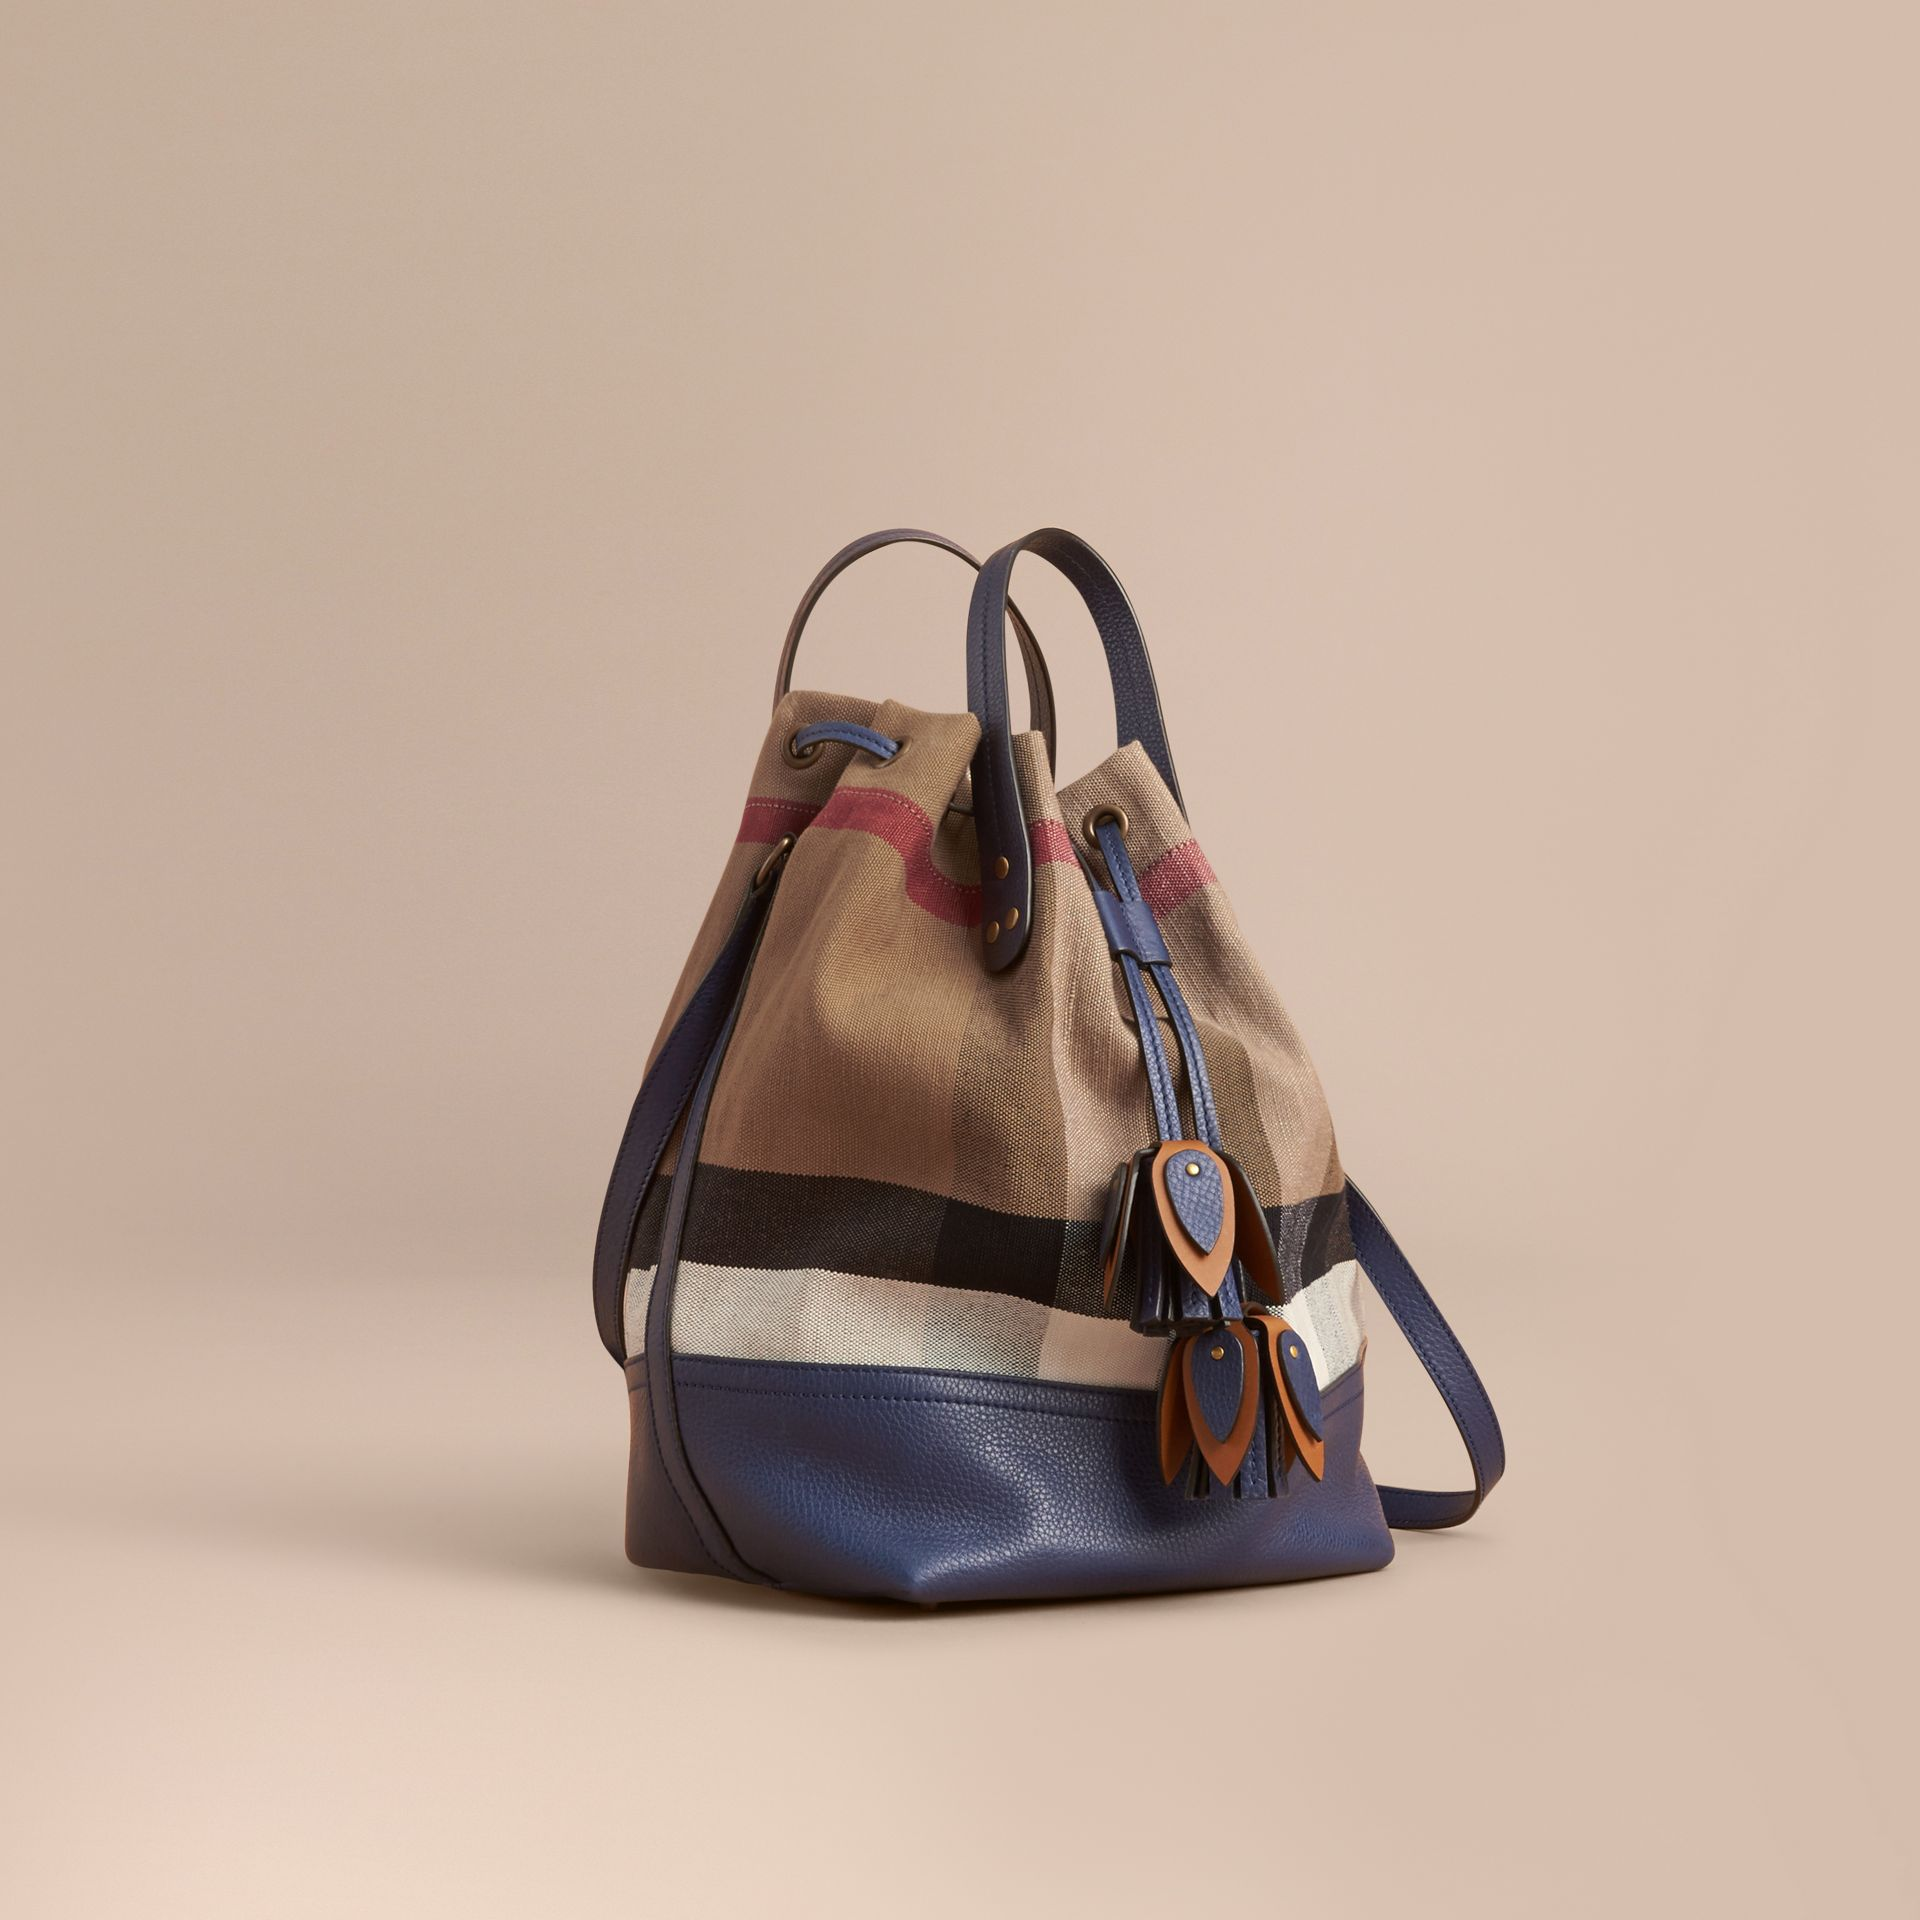 Medium Canvas Check and Leather Bucket Bag in Brilliant Navy - Women | Burberry - gallery image 1